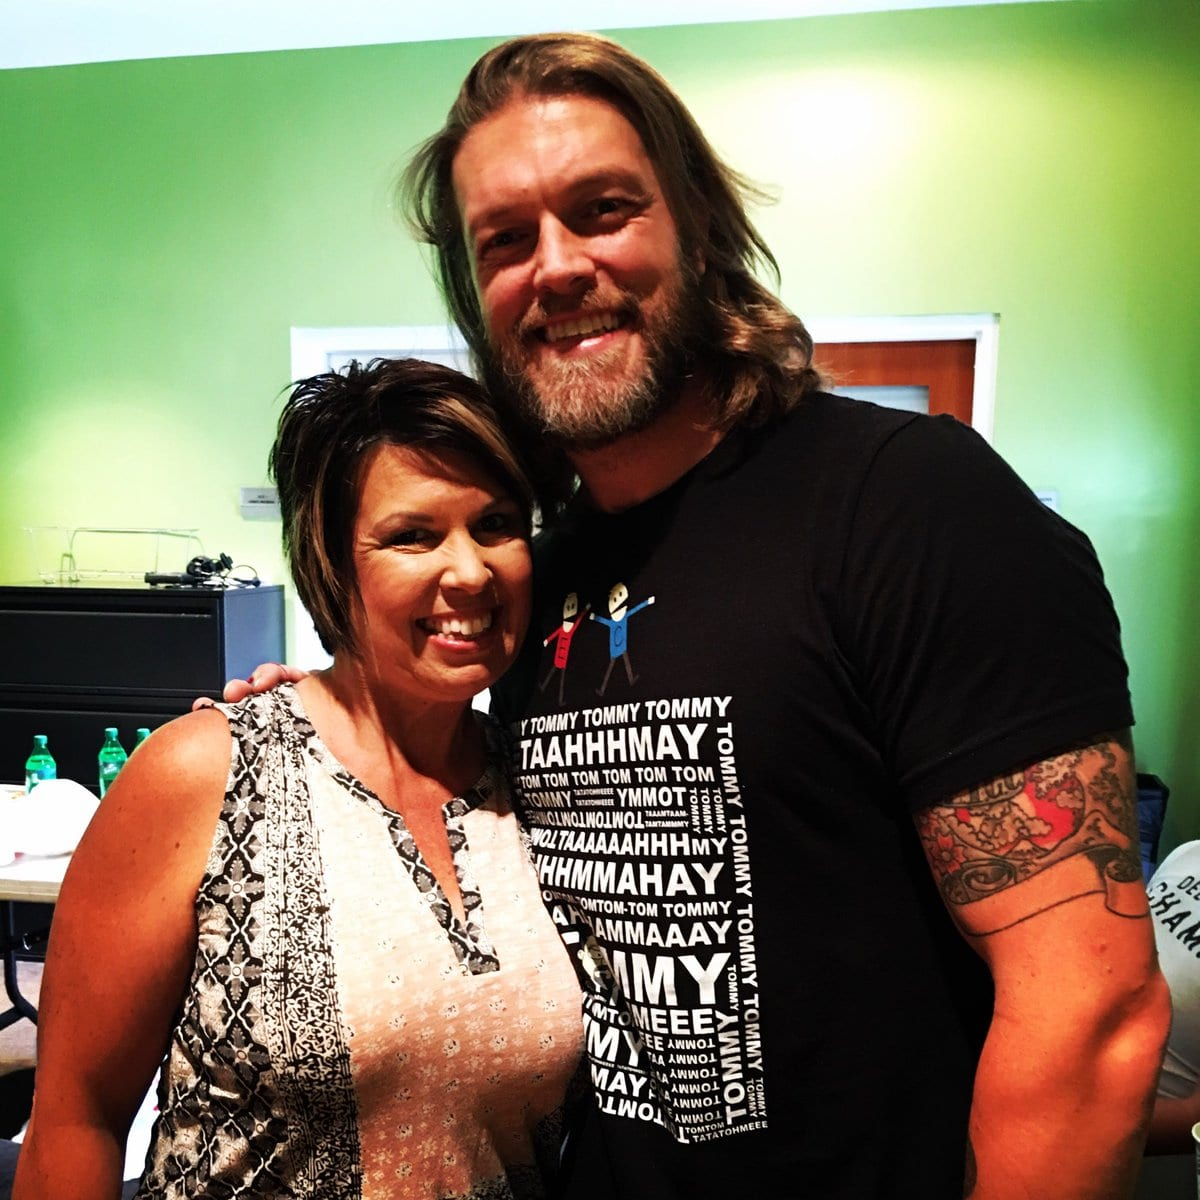 Edge Reunited With Vickie Guerrero For Filming For The Edge Christian Show For The Wwe Network Edge Shared The Below Photo On Twitter